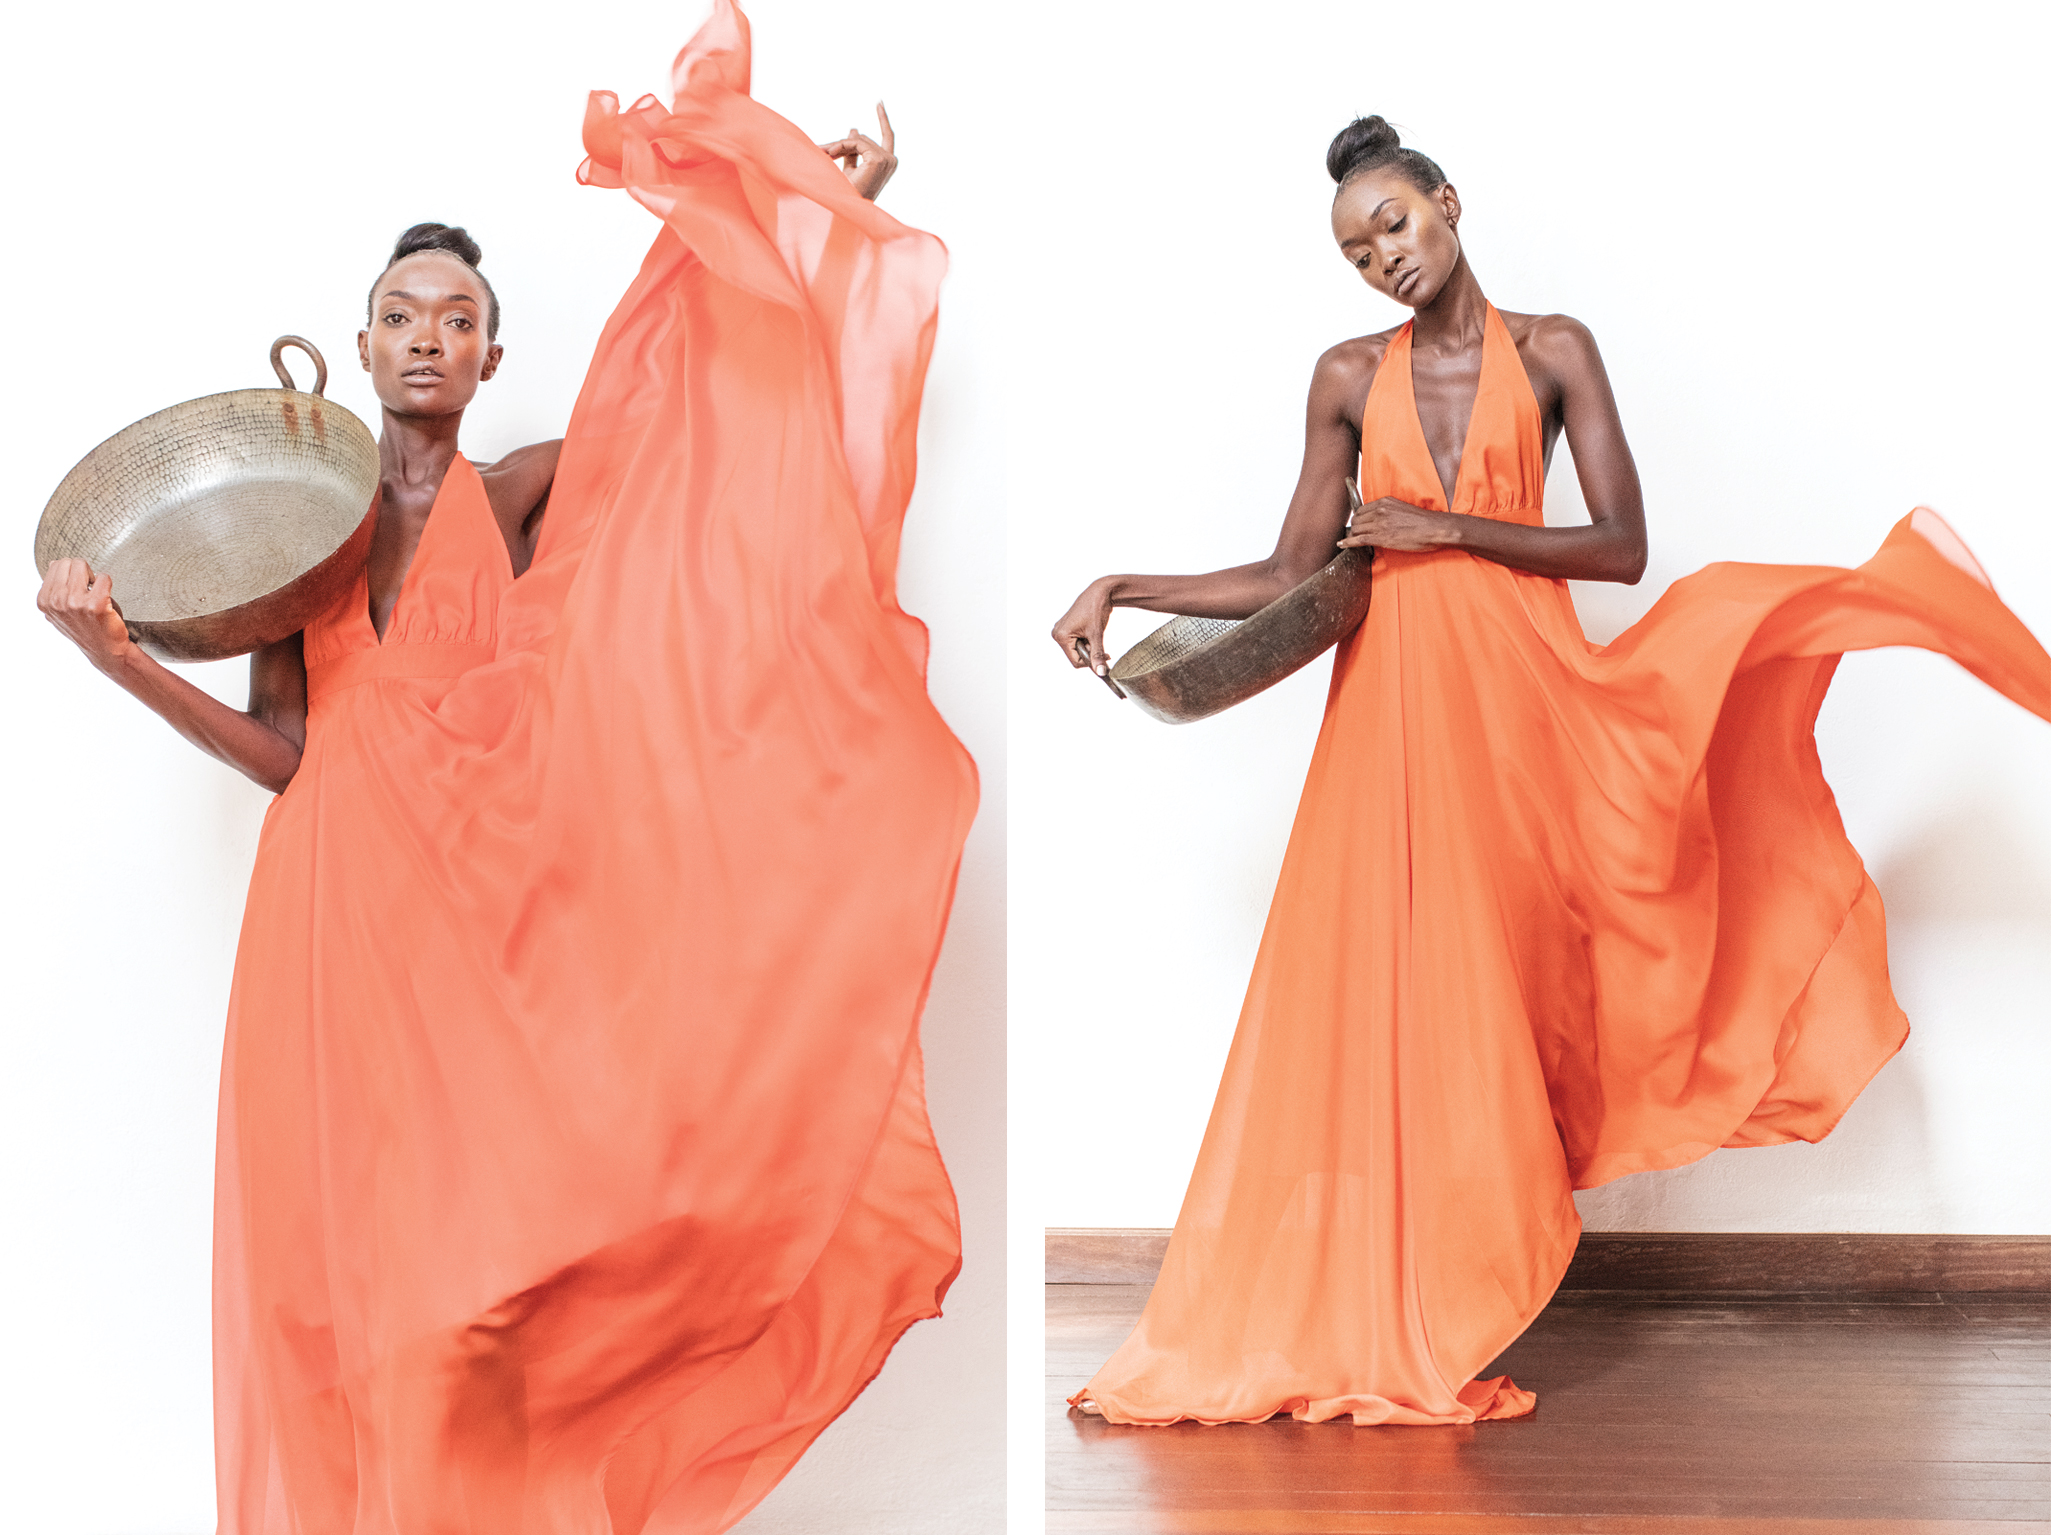 Rose princess gown  – a dress with just the drape and flow you'll want to feel magical! 100% chiffon